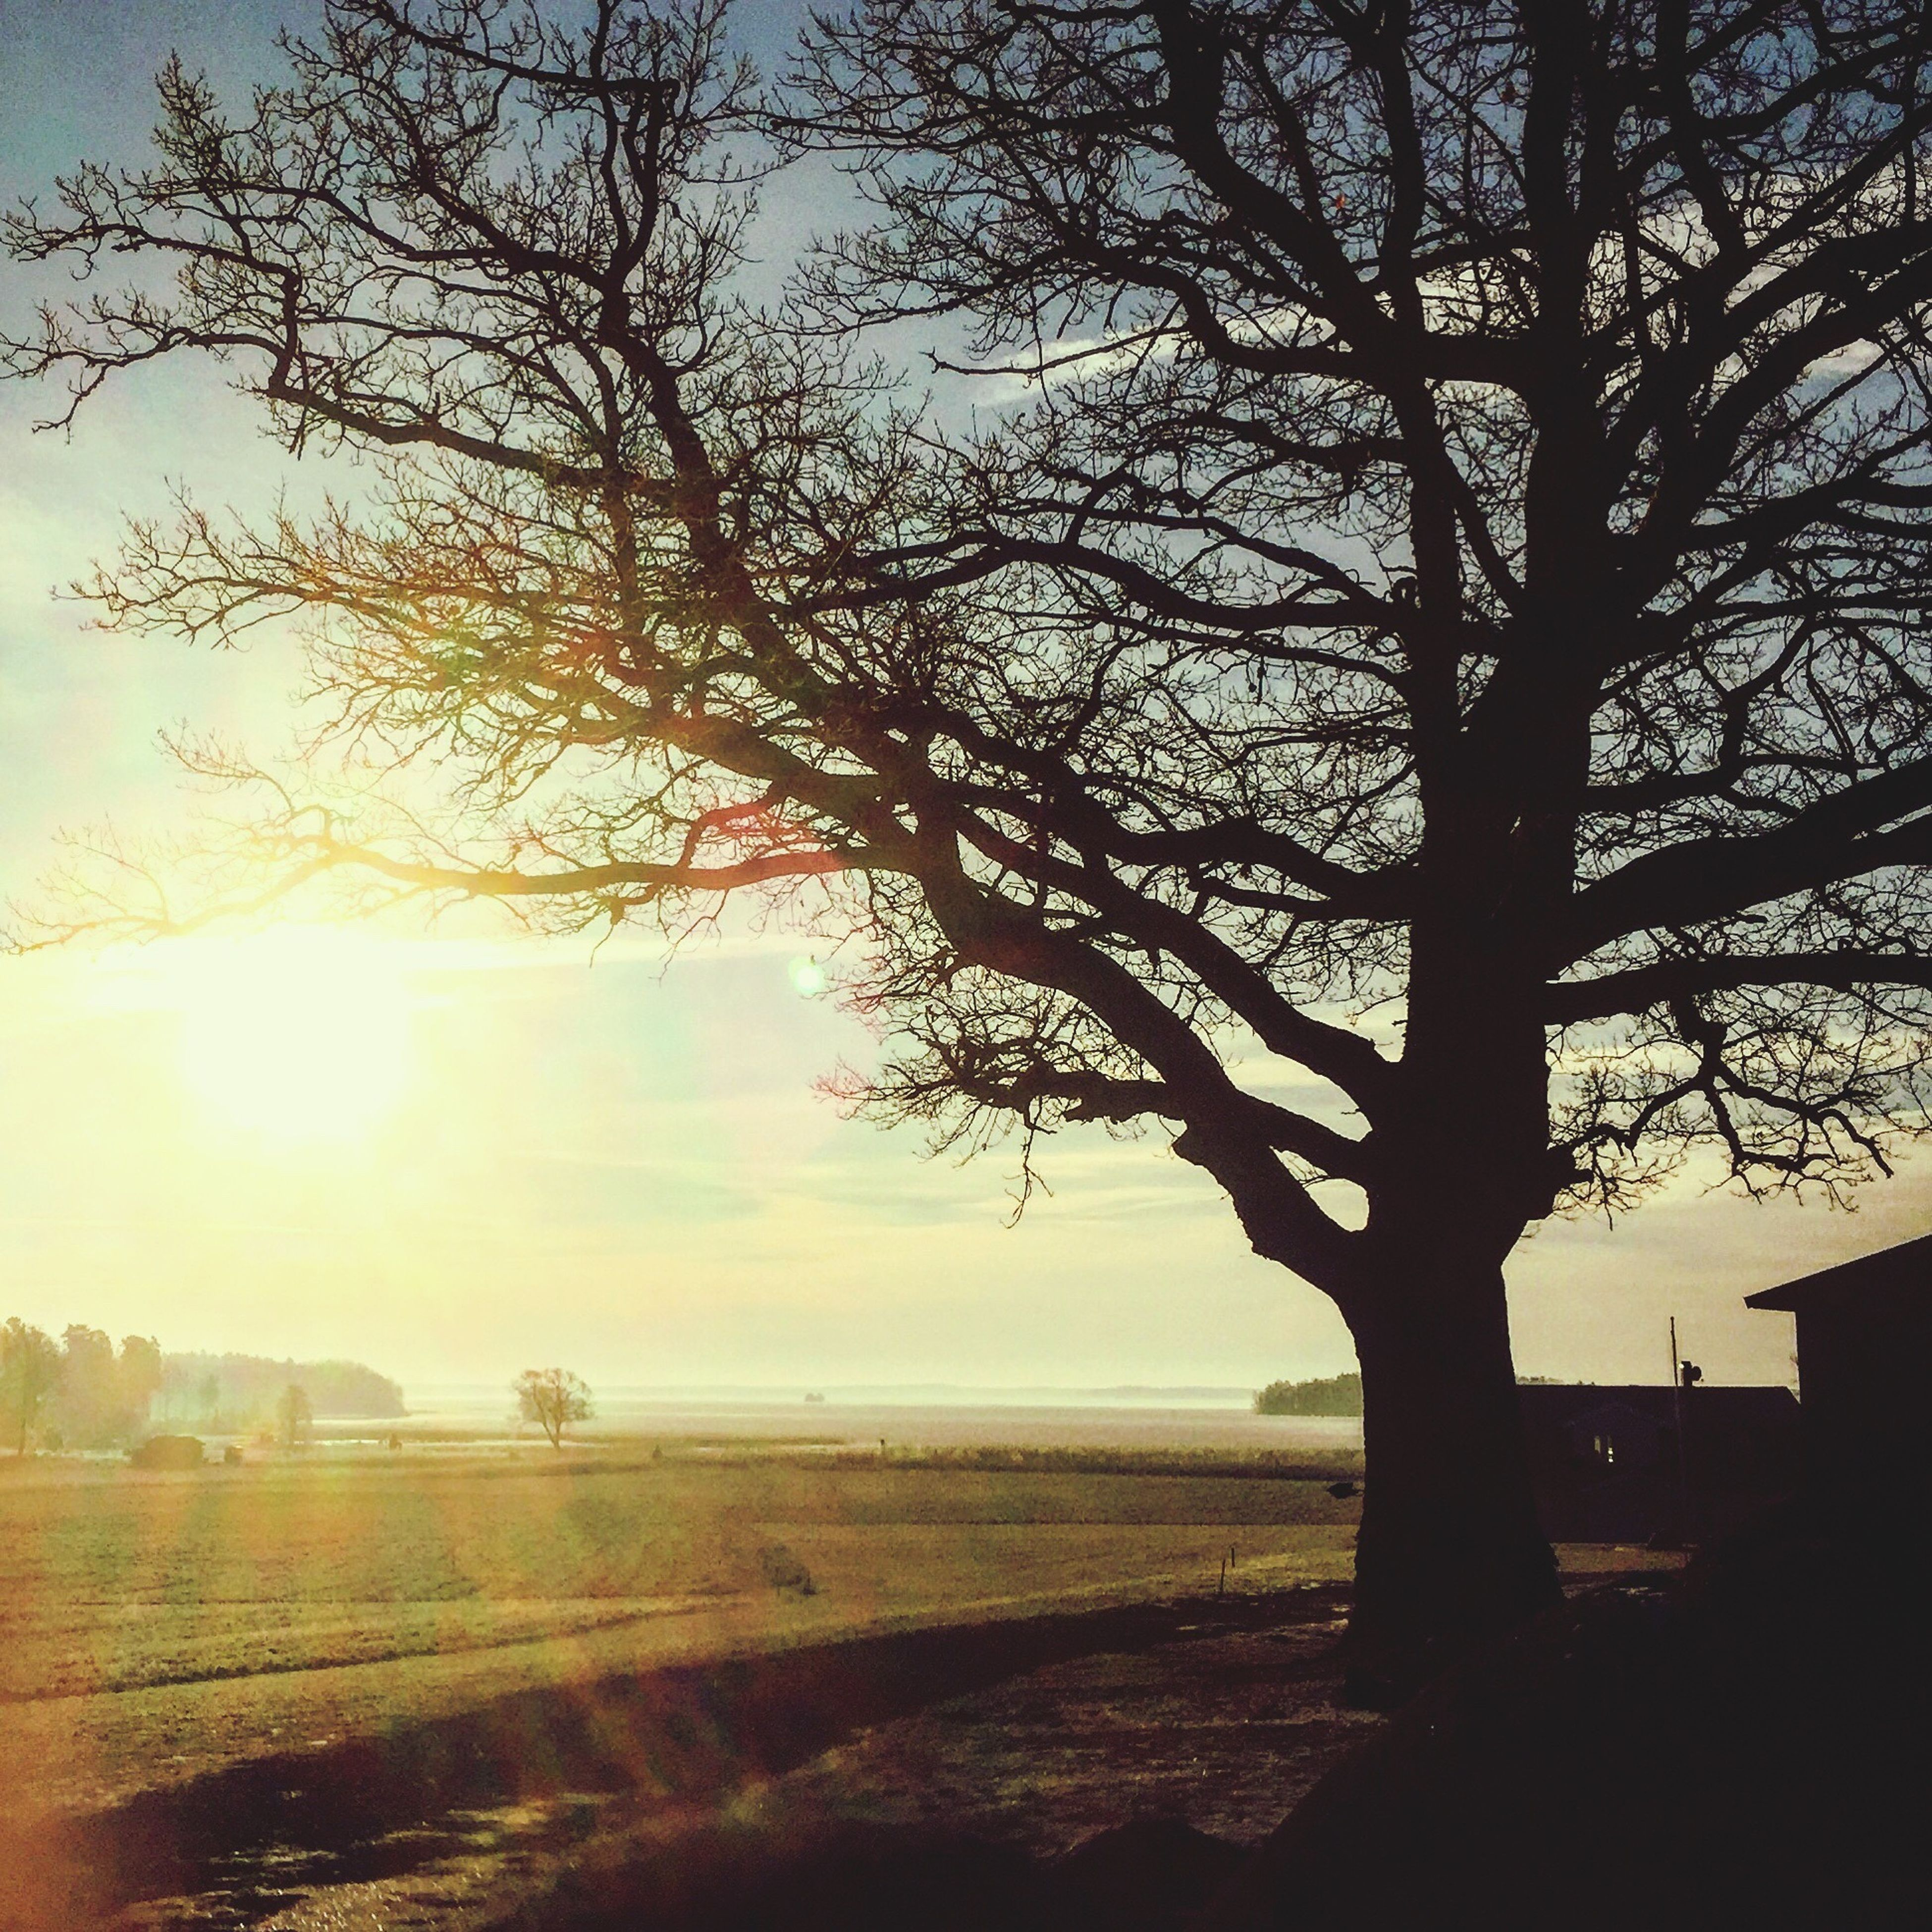 tree, nature, sunset, sunlight, beauty in nature, sky, scenics, tranquil scene, tranquility, sun, growth, outdoors, no people, field, landscape, sunbeam, branch, day